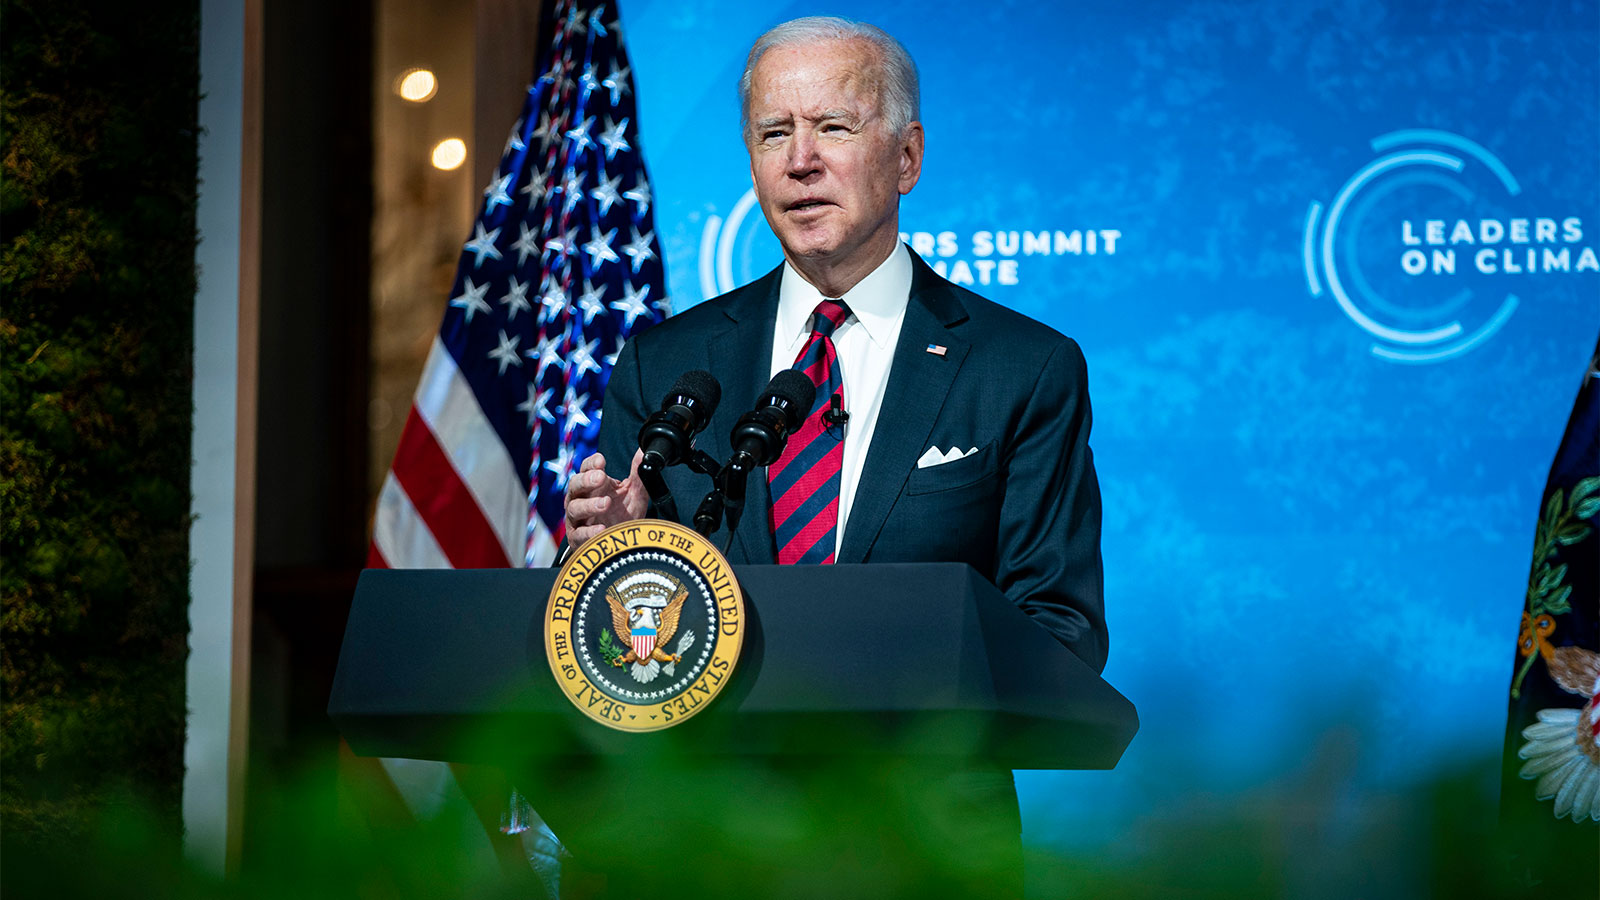 President Joe Biden delivering remarks during a virtual Leaders Summit on Climate